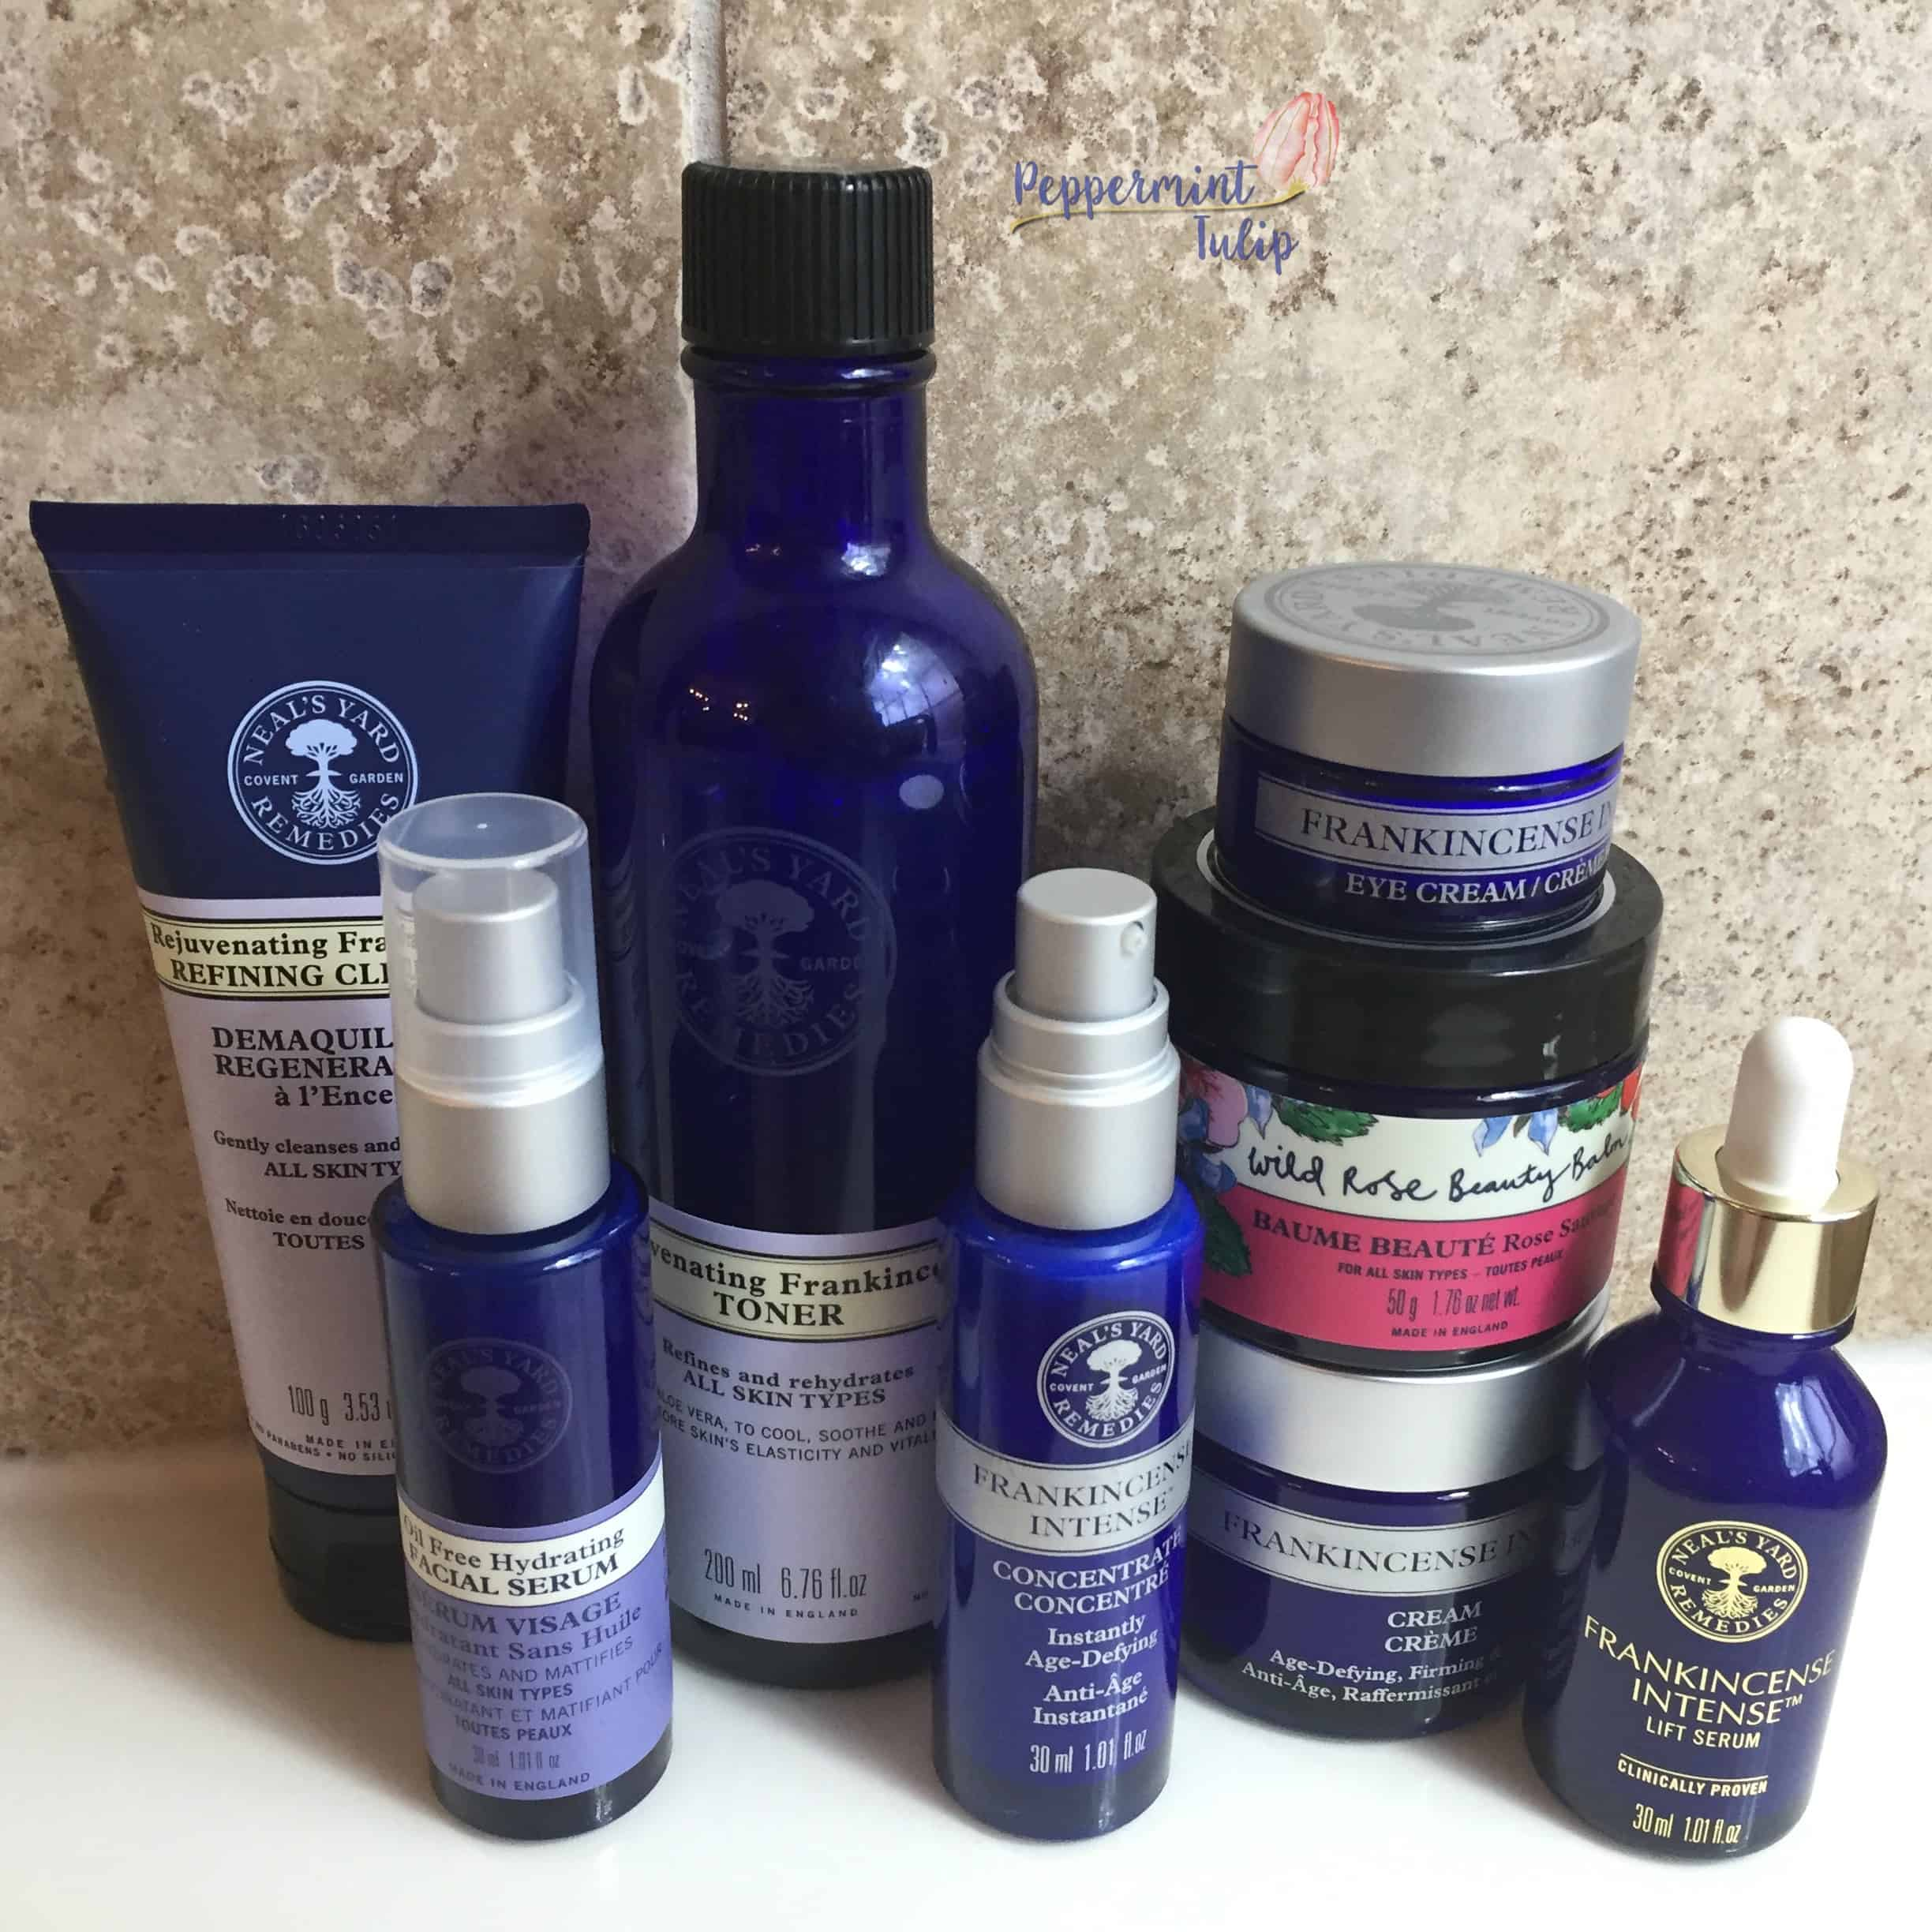 These are the 8 products available in the partnership between NYR Organic and Credo stores.   Neal's Yard Remedies. Read PeppermintTulip.com to find the latest info.